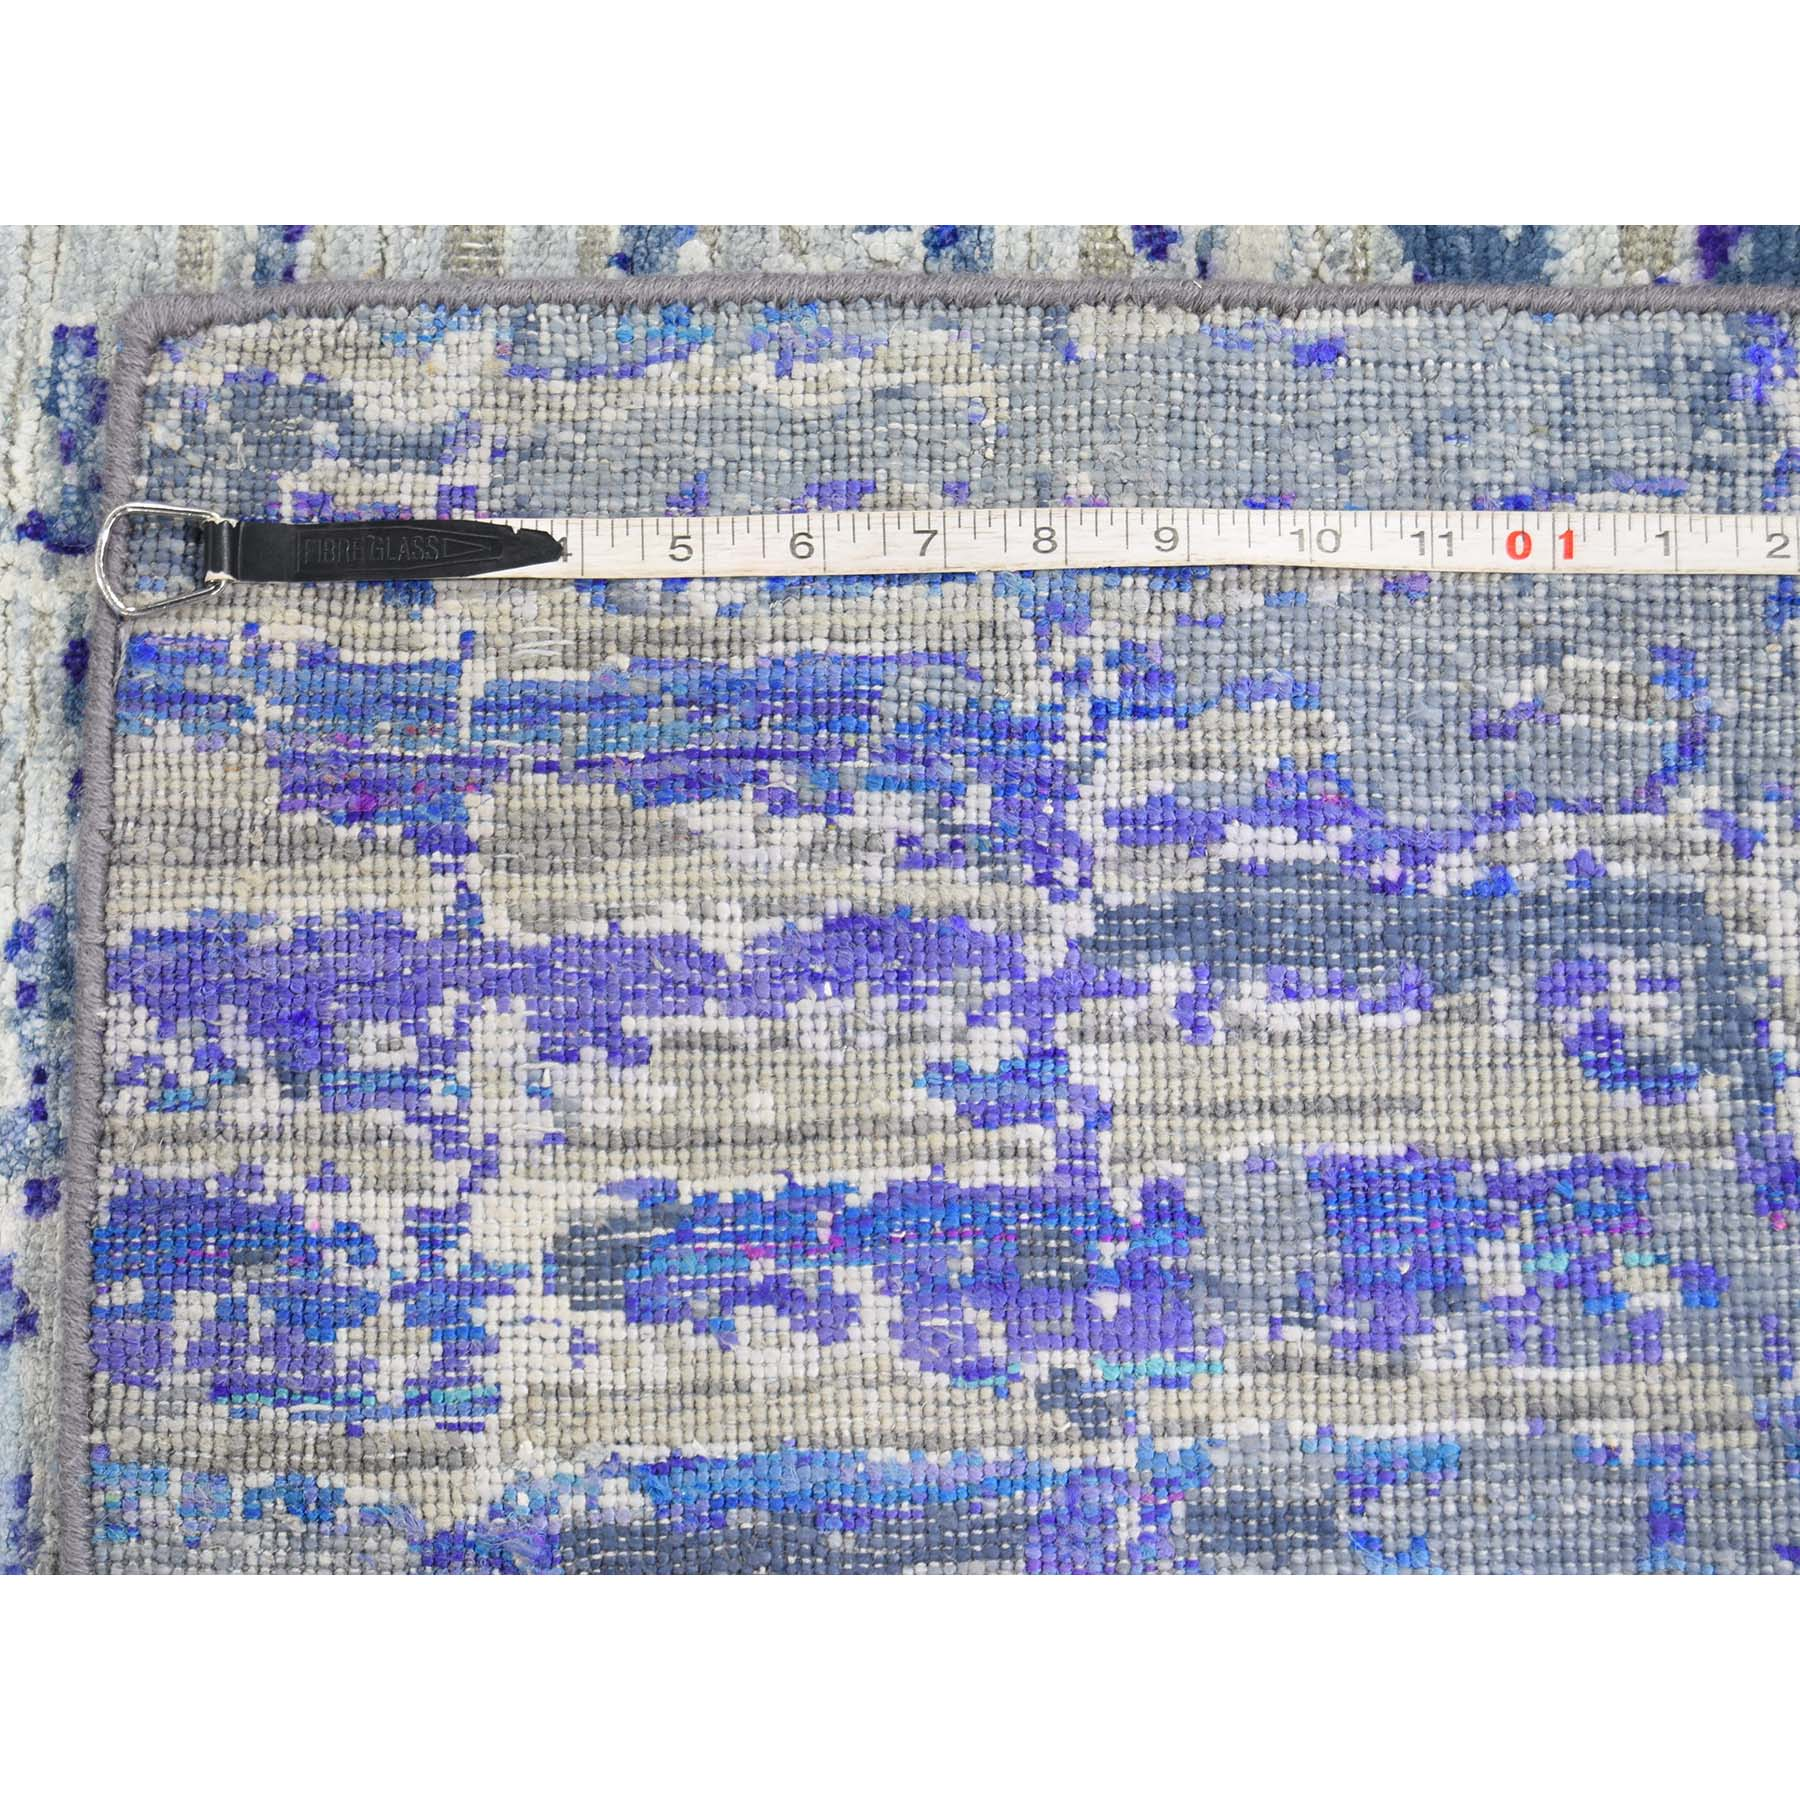 9-x12-2  Sari Silk Diminishing Bricks Hand-Knotted Oriental Rug